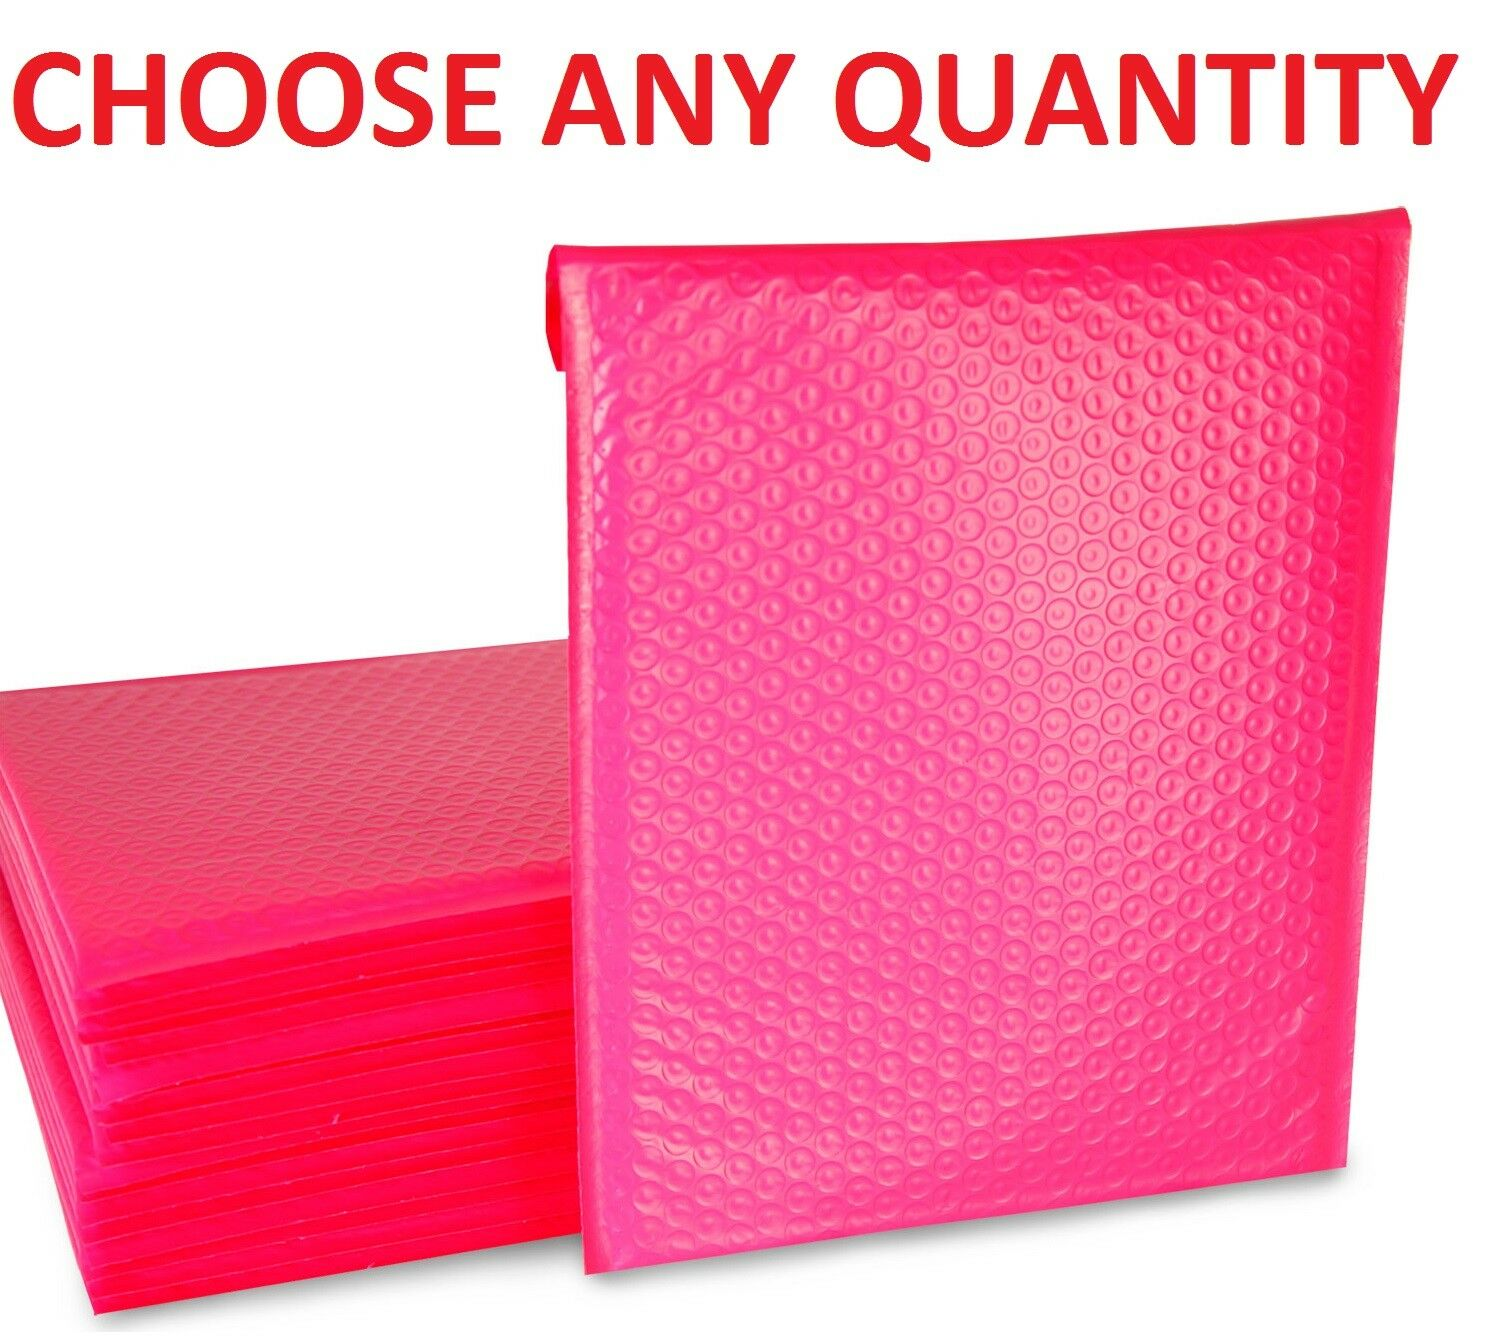 HOT PINK ANY SIZE POLY BUBBLE MAILERS SHIPPING MAILING PADDED BAGS ENVELOPES